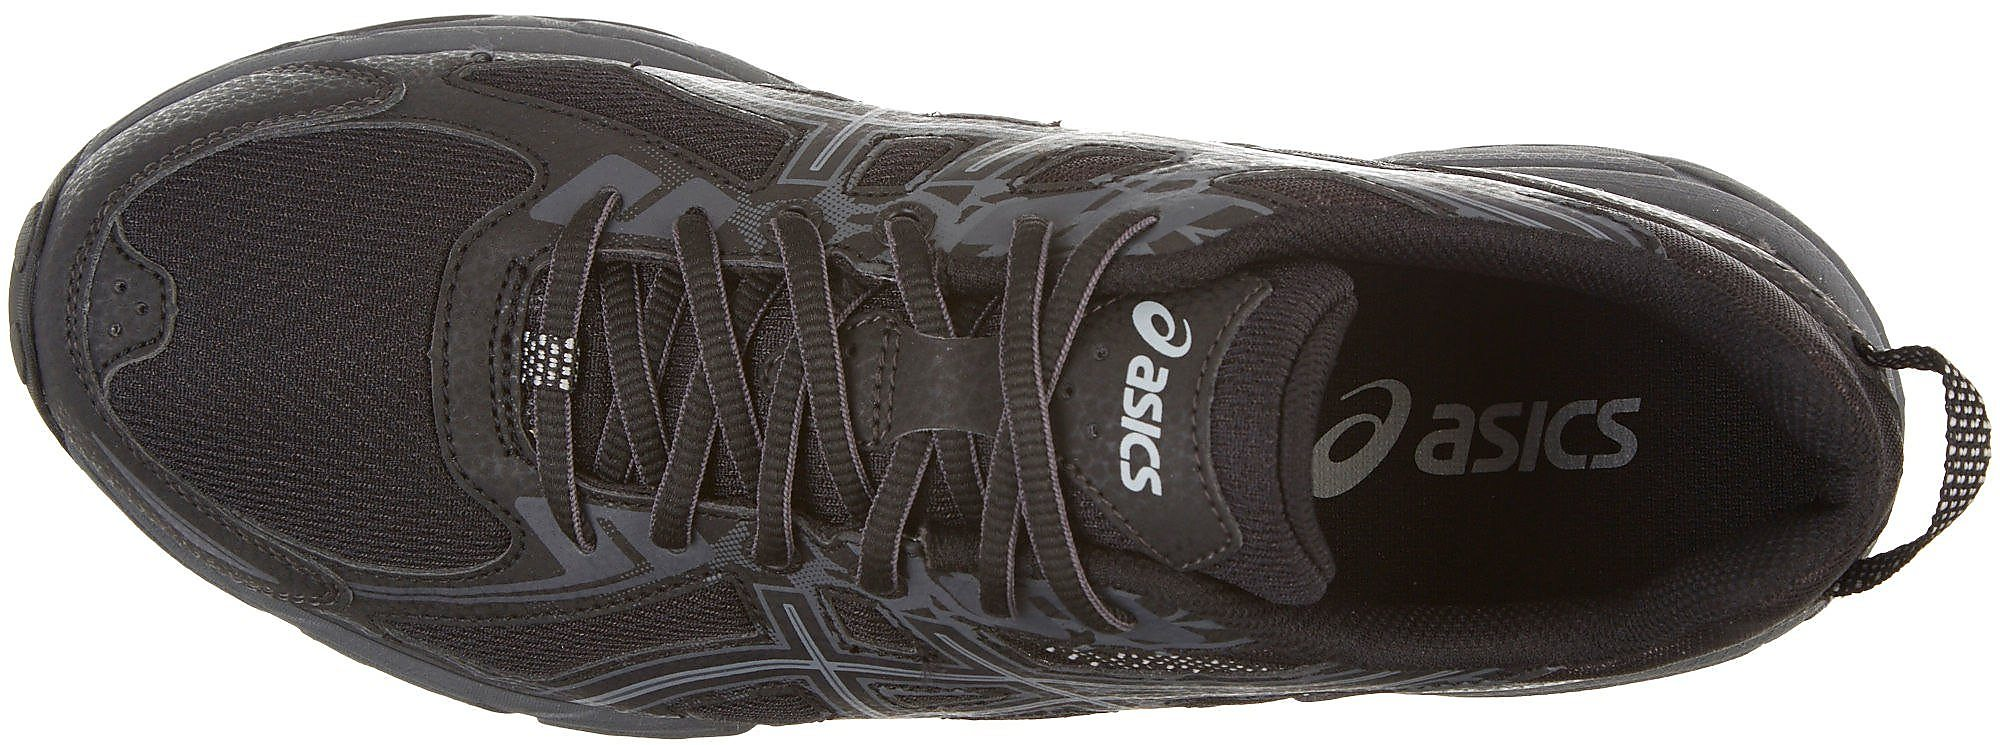 Asics-Mens-Gel-Venture-6-Athletic-Shoes thumbnail 5